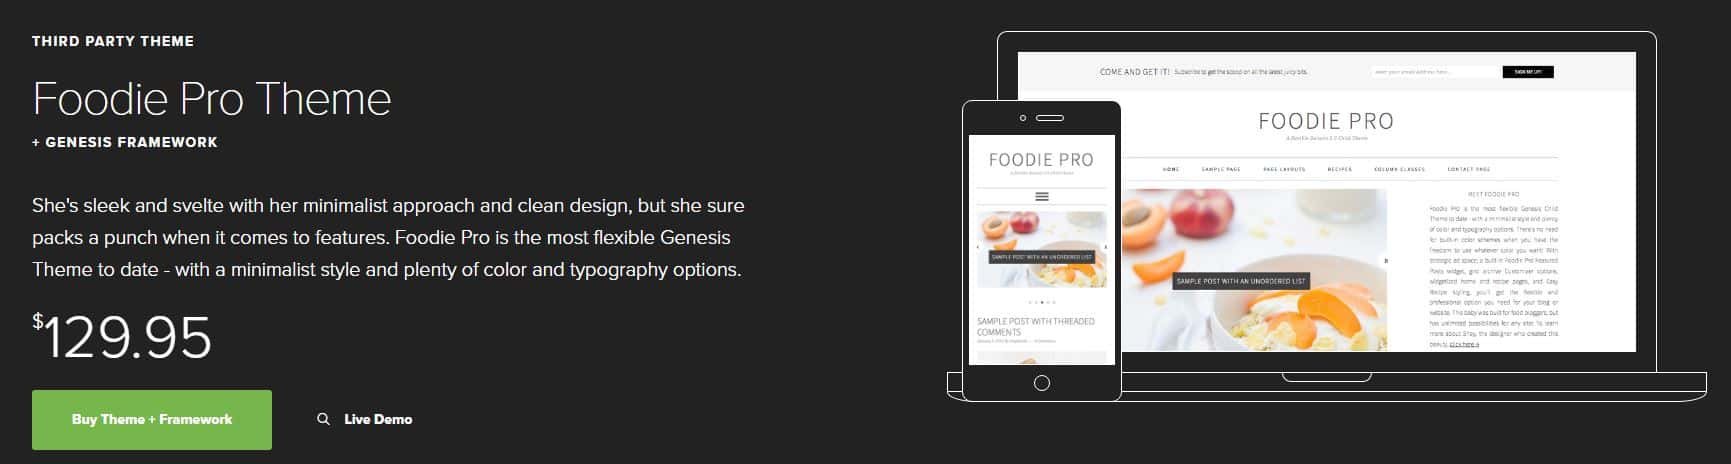 Foodie Pro Theme on Studio Press